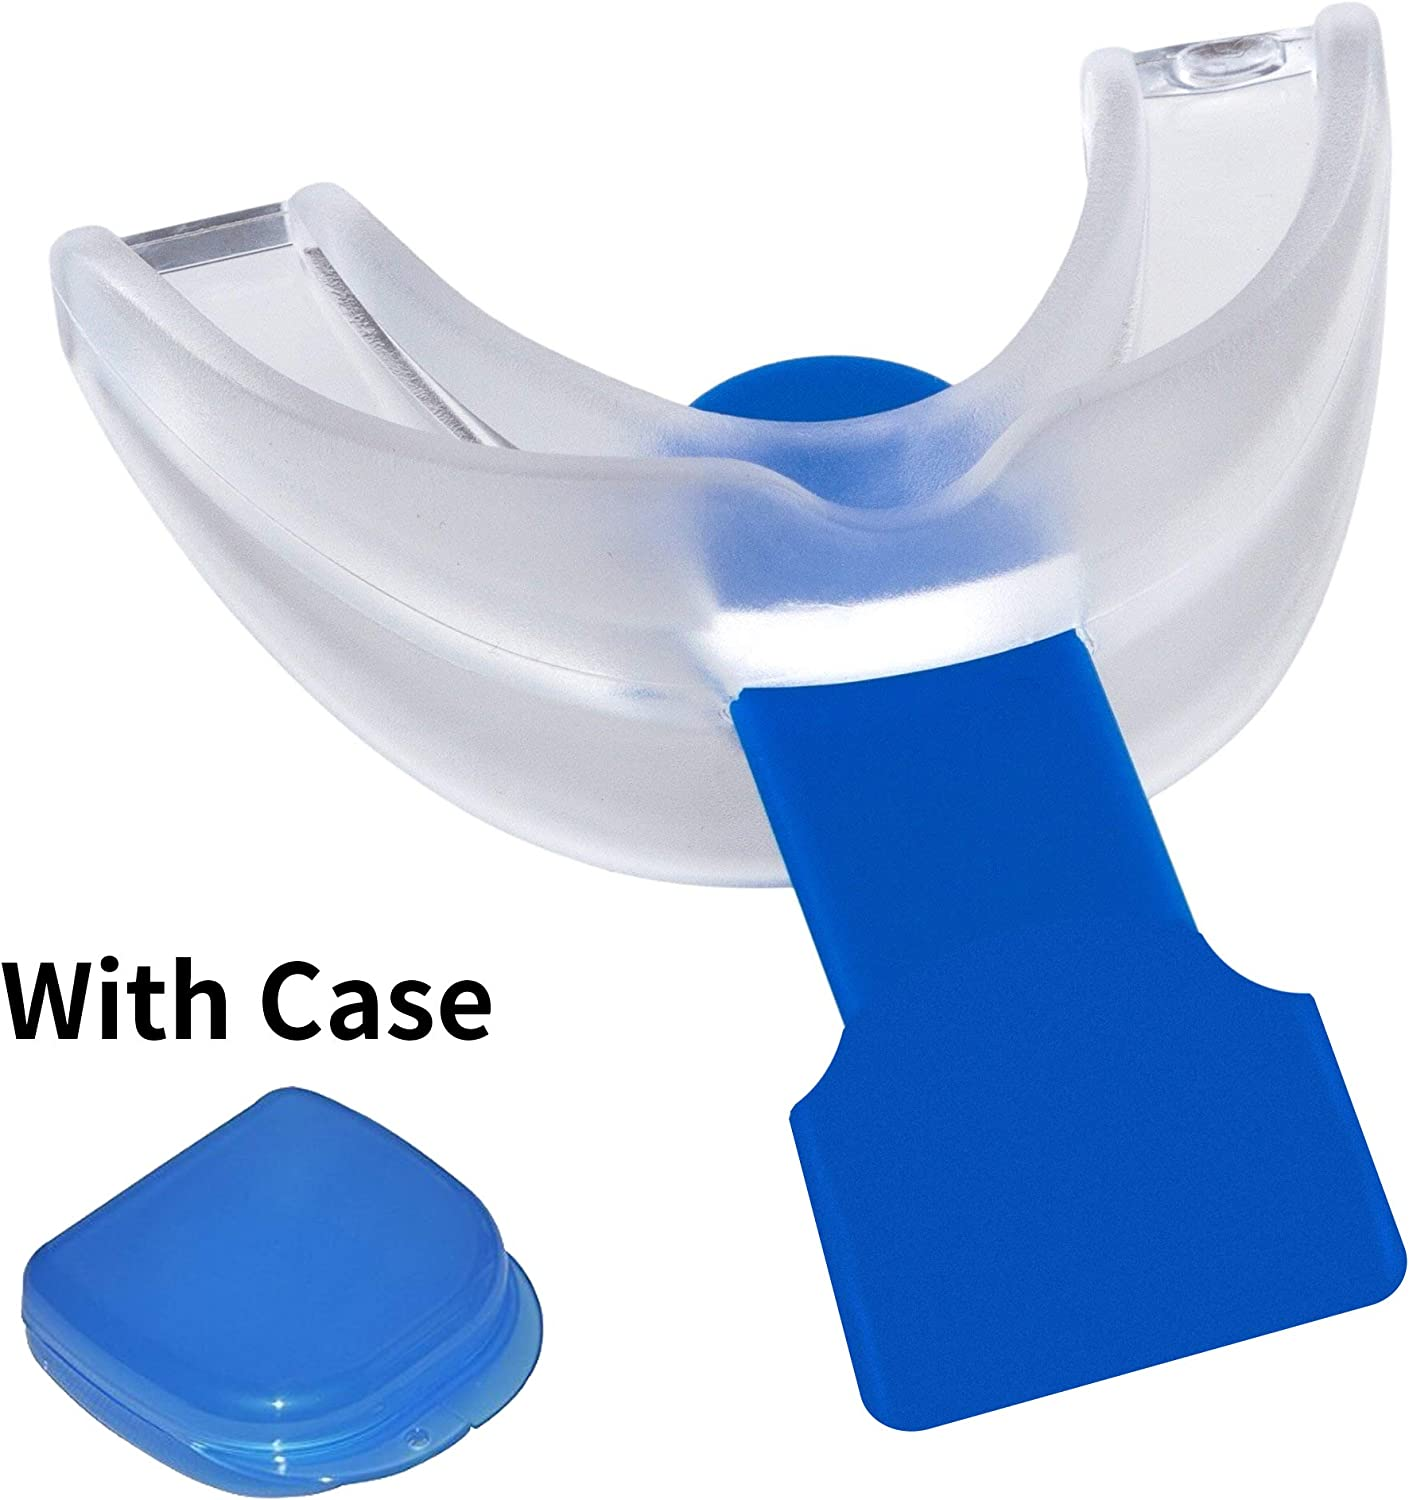 Rubber Adjustable Mouth Guard Teeth Protector w// Storage Case for Kid Adult